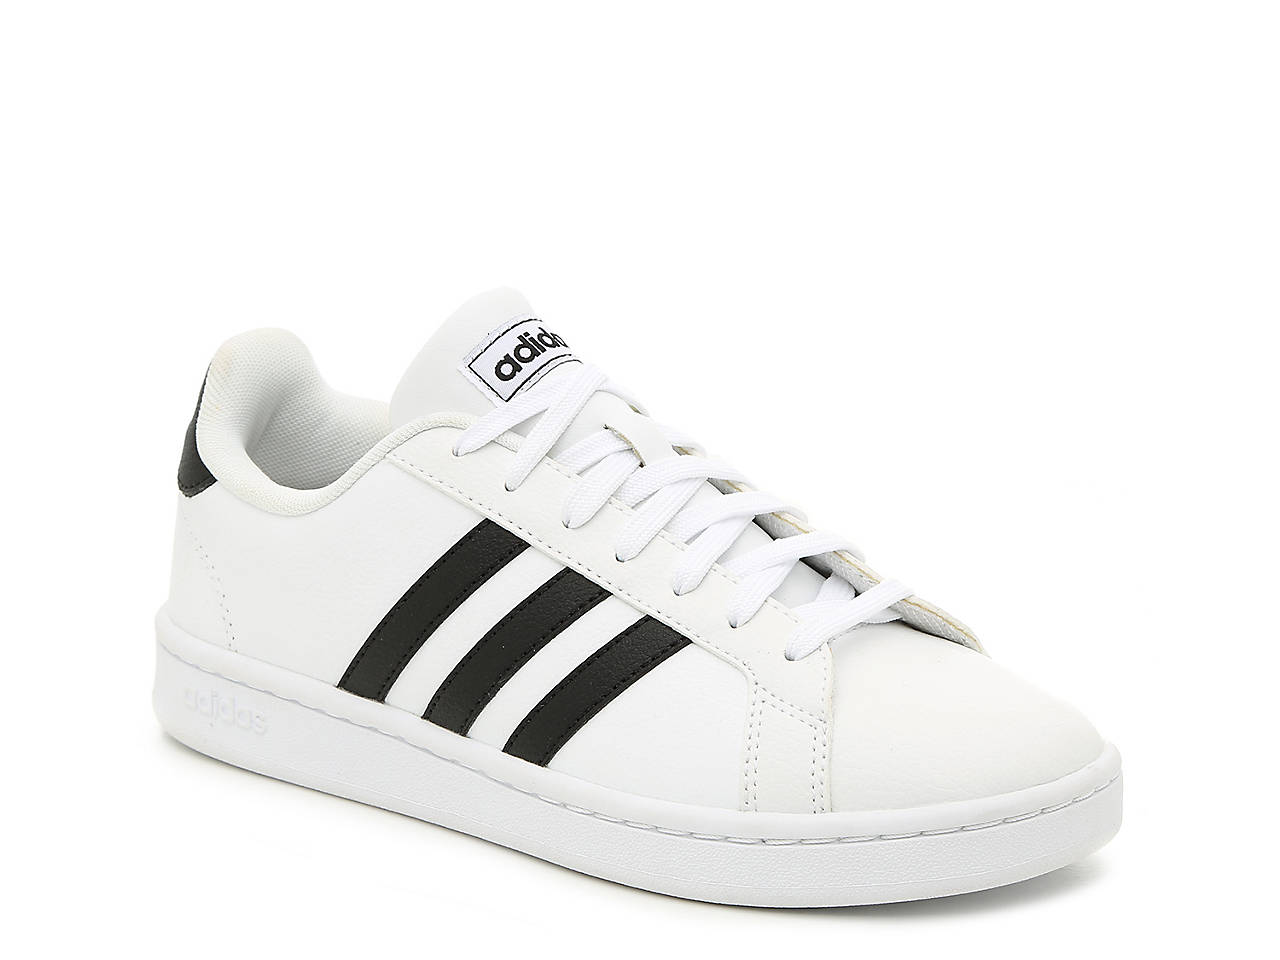 f63f99beb81 adidas Grand Court Sneaker - Women s Women s Shoes